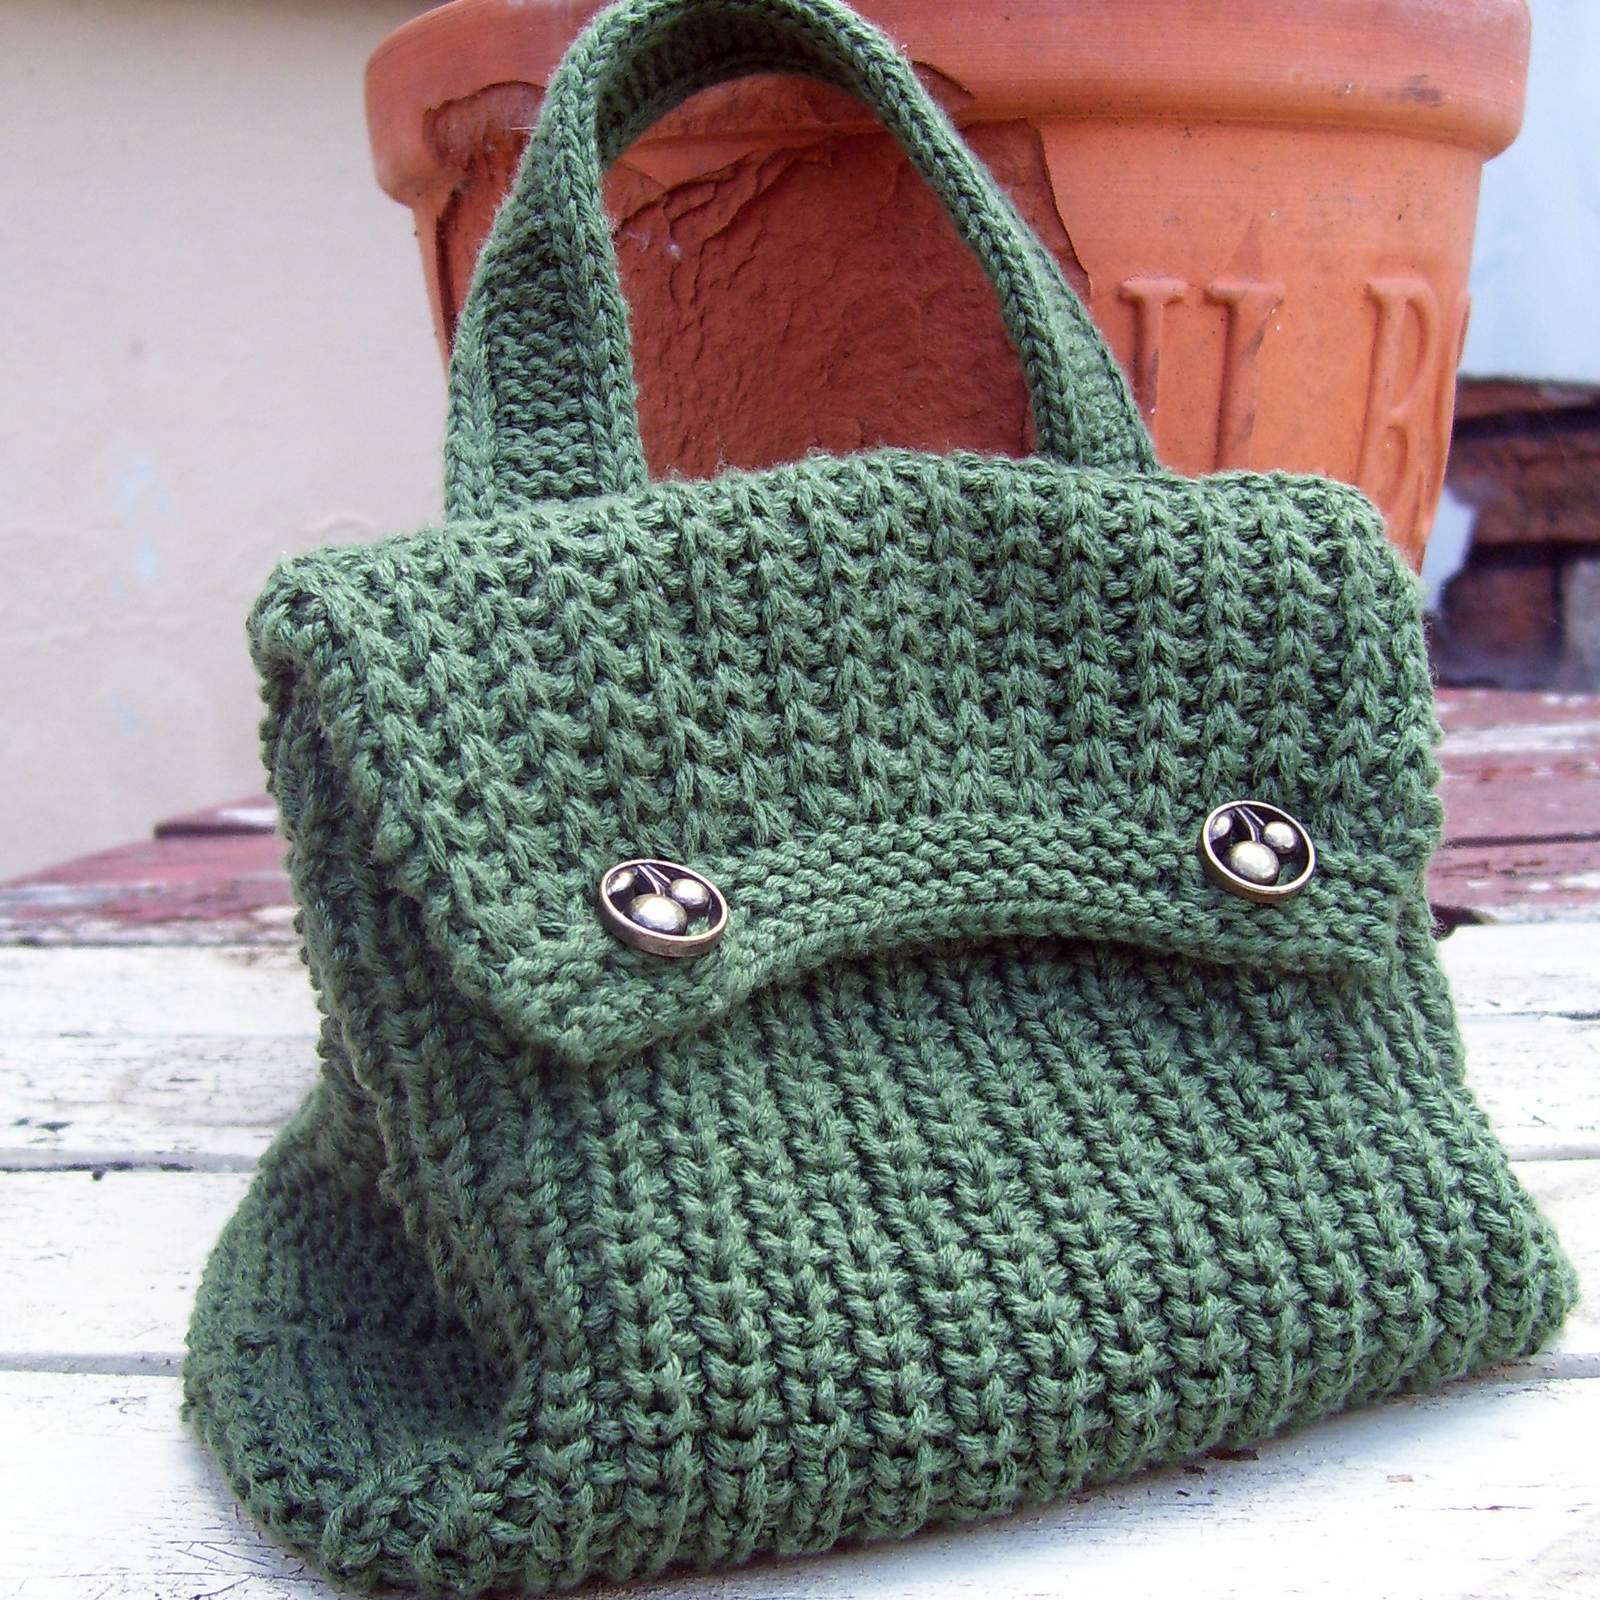 Crochet Patterns For Purses And Bags : FREE CROCHET PATTERNS FOR PURSES Crochet Tutorials